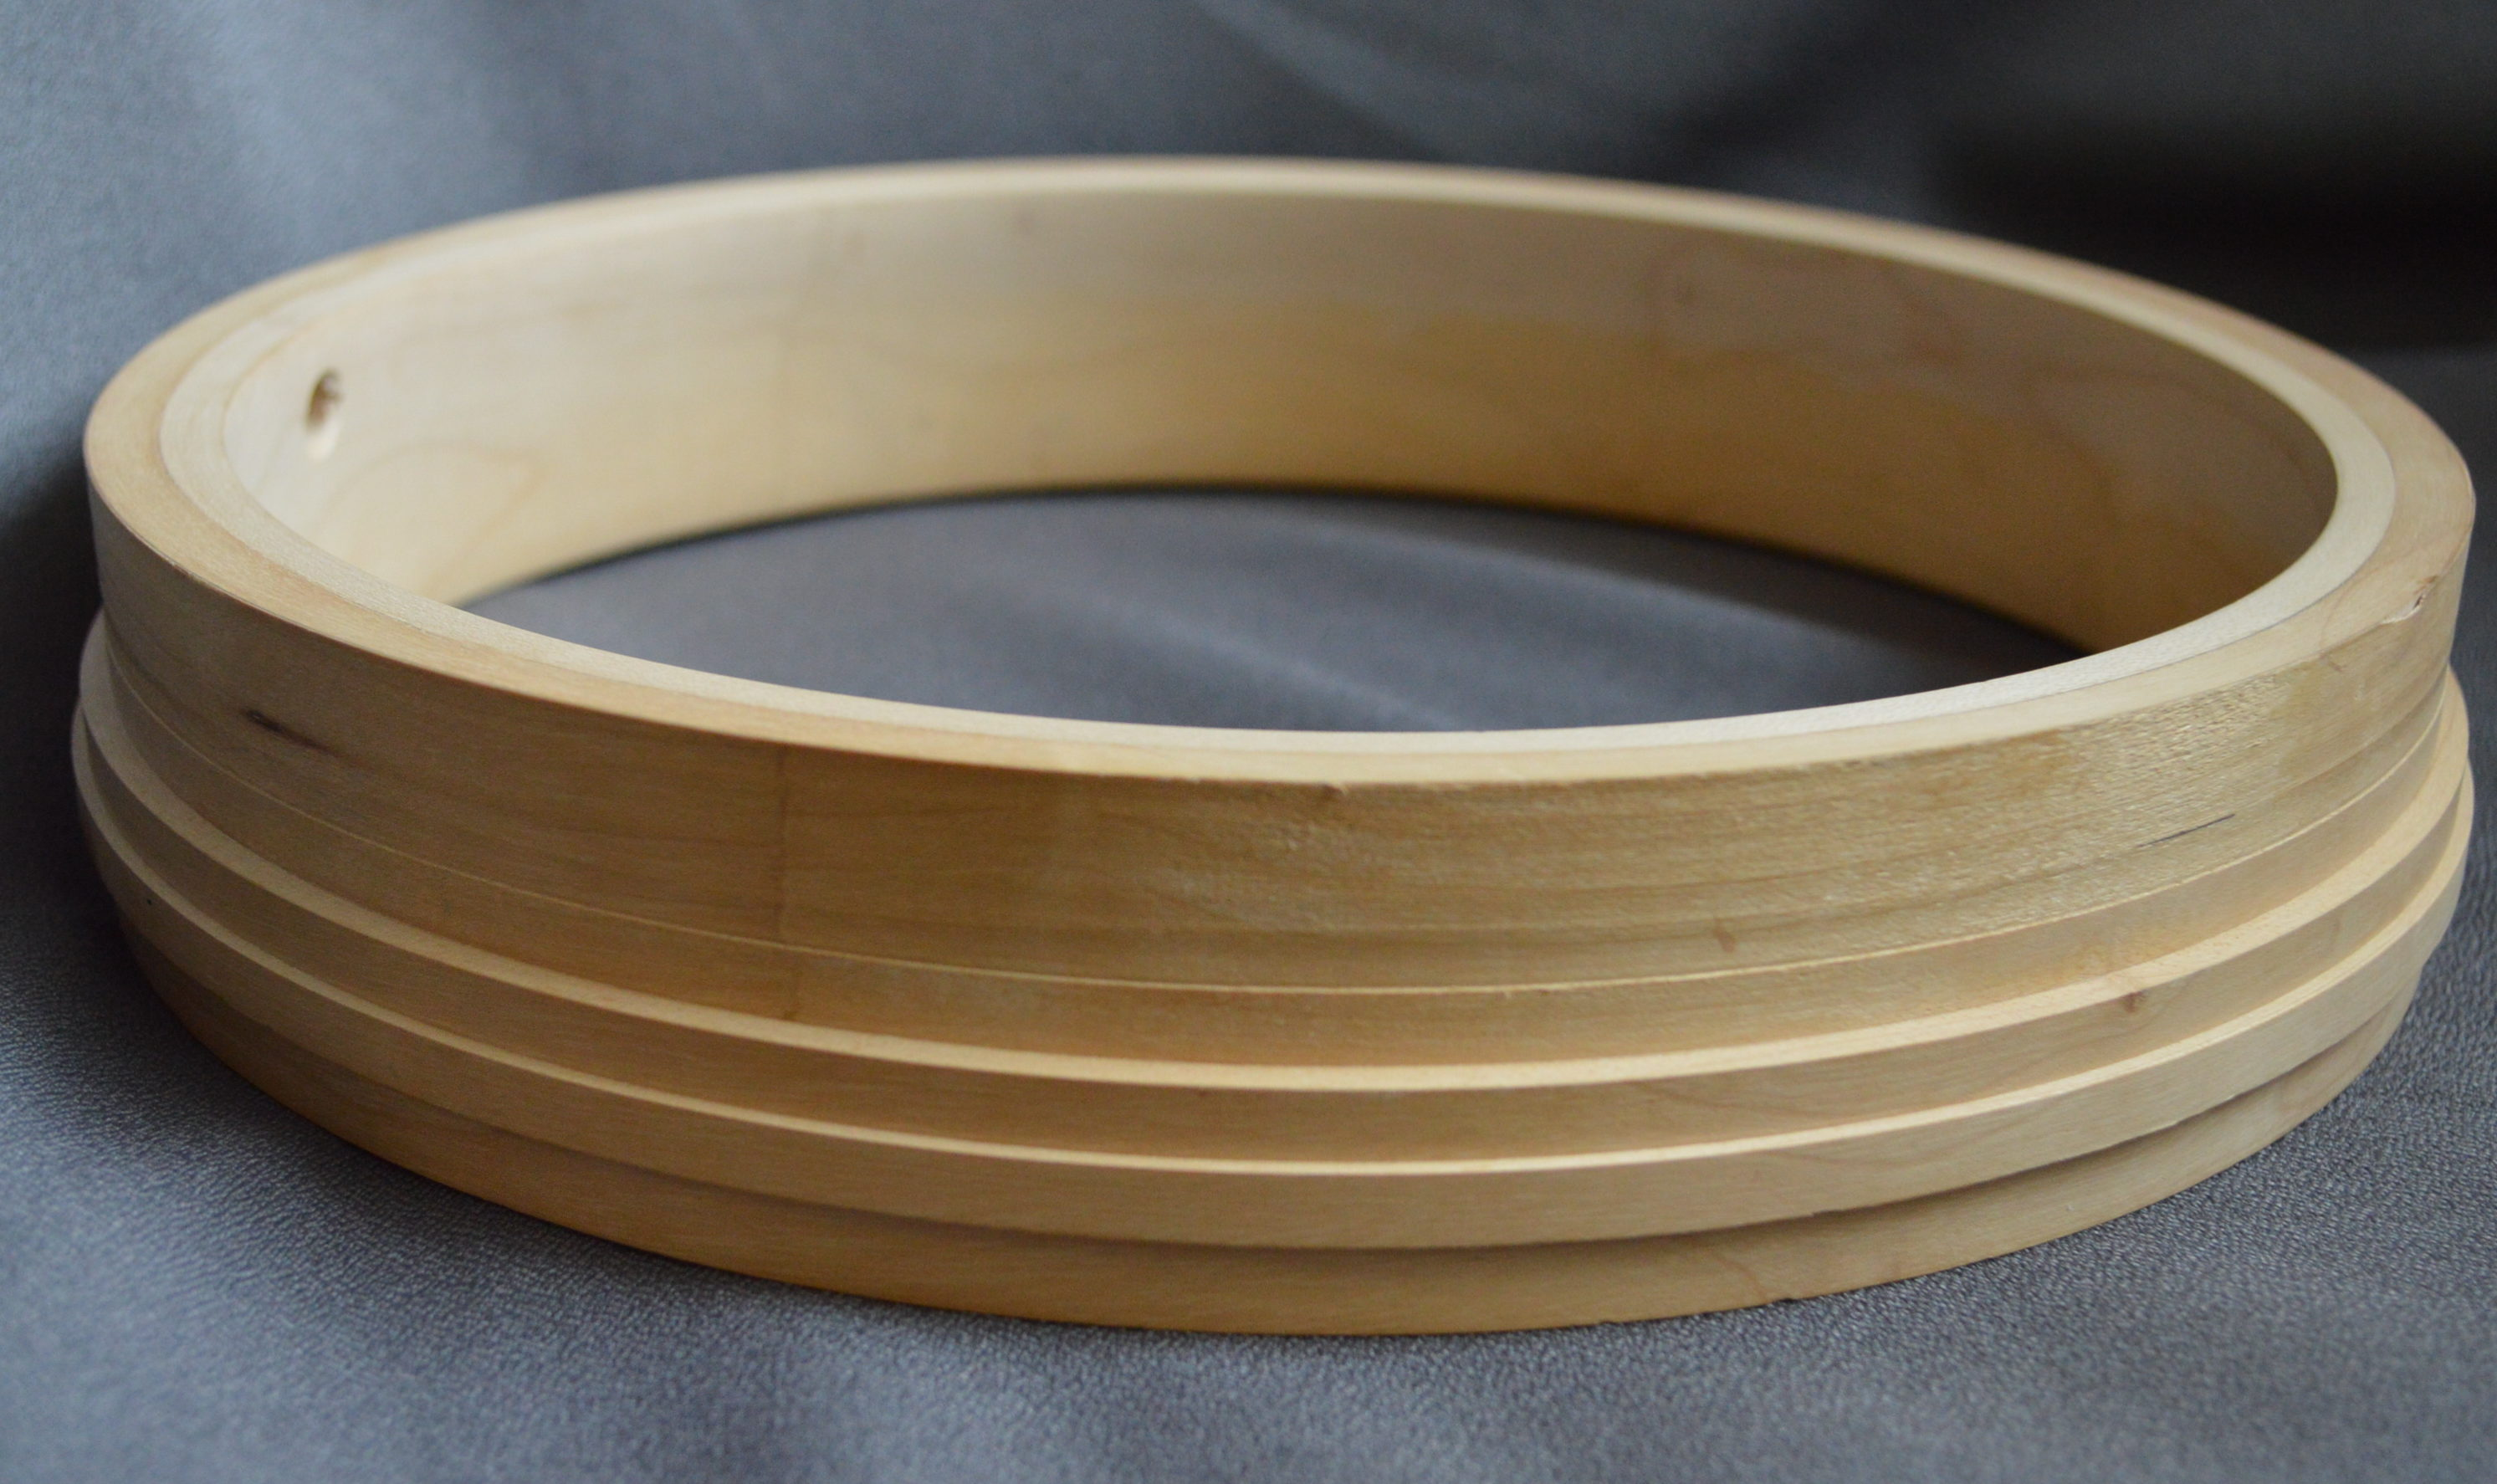 Prucha 3-ply Maple Rim Product